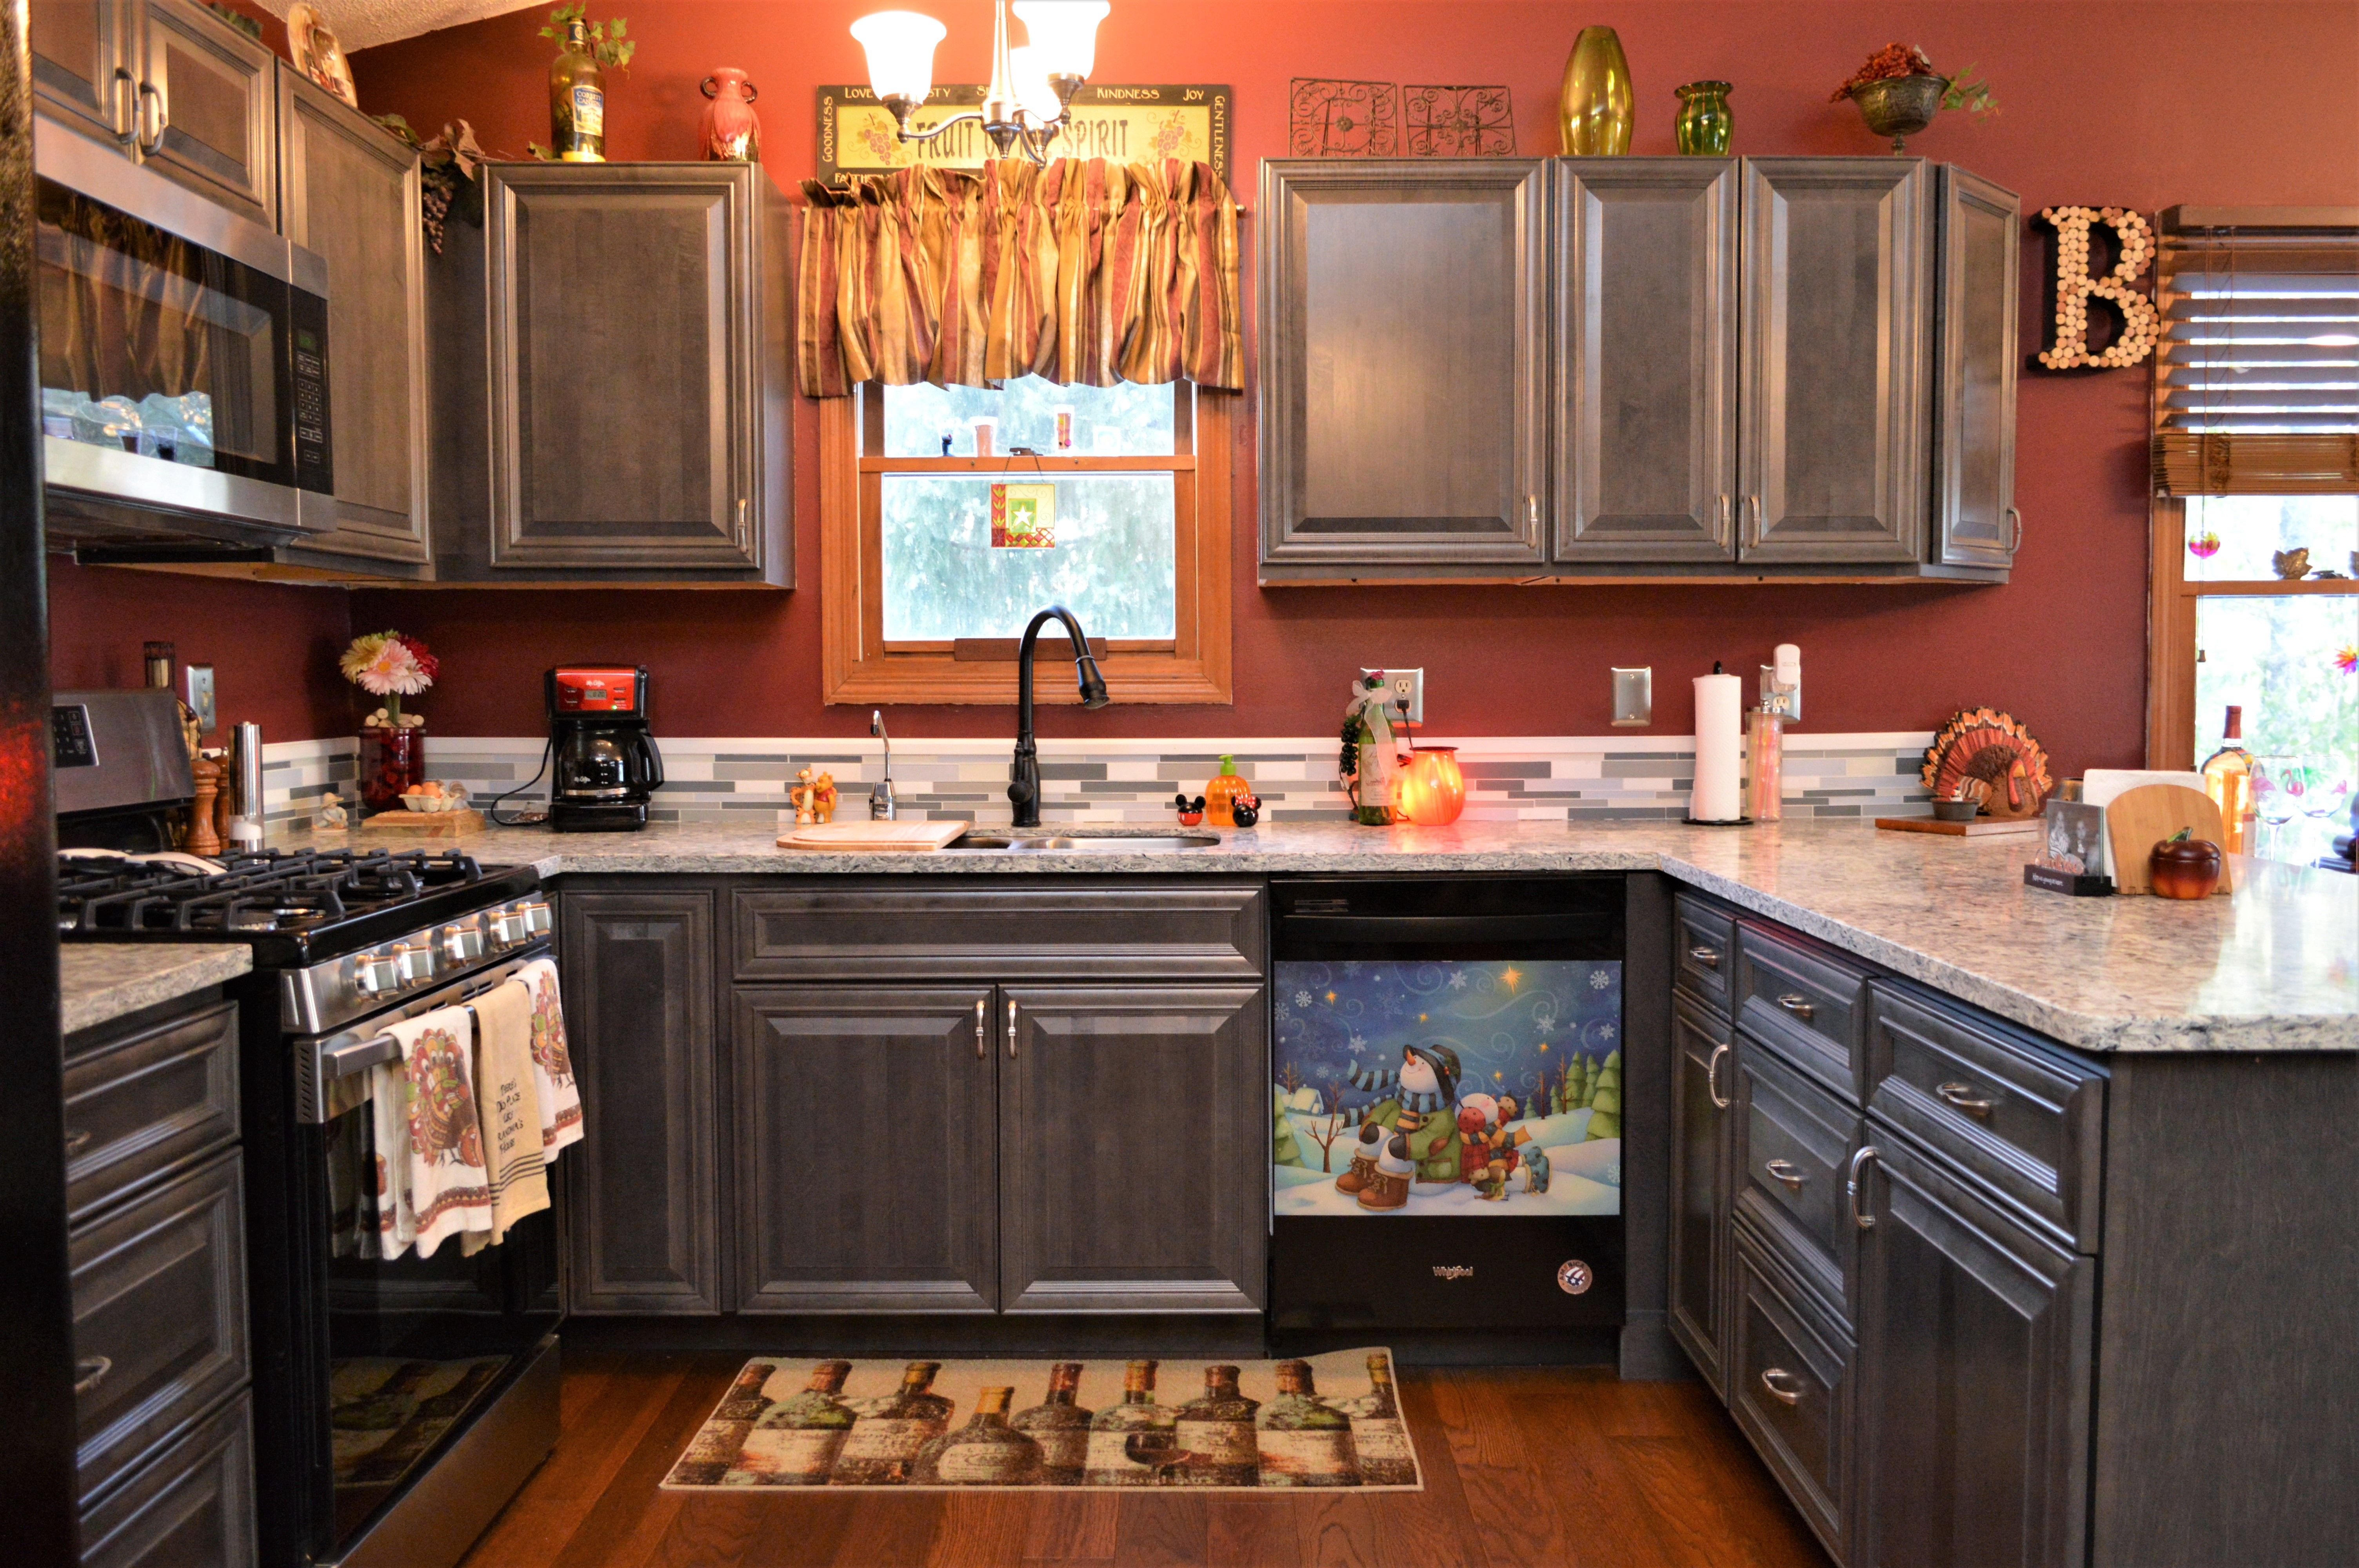 Bailey S Cabinets Baileytown Usa Select Maple Slate Finish Williamsburg Door Style Cabinet Cabinetry Kitchen